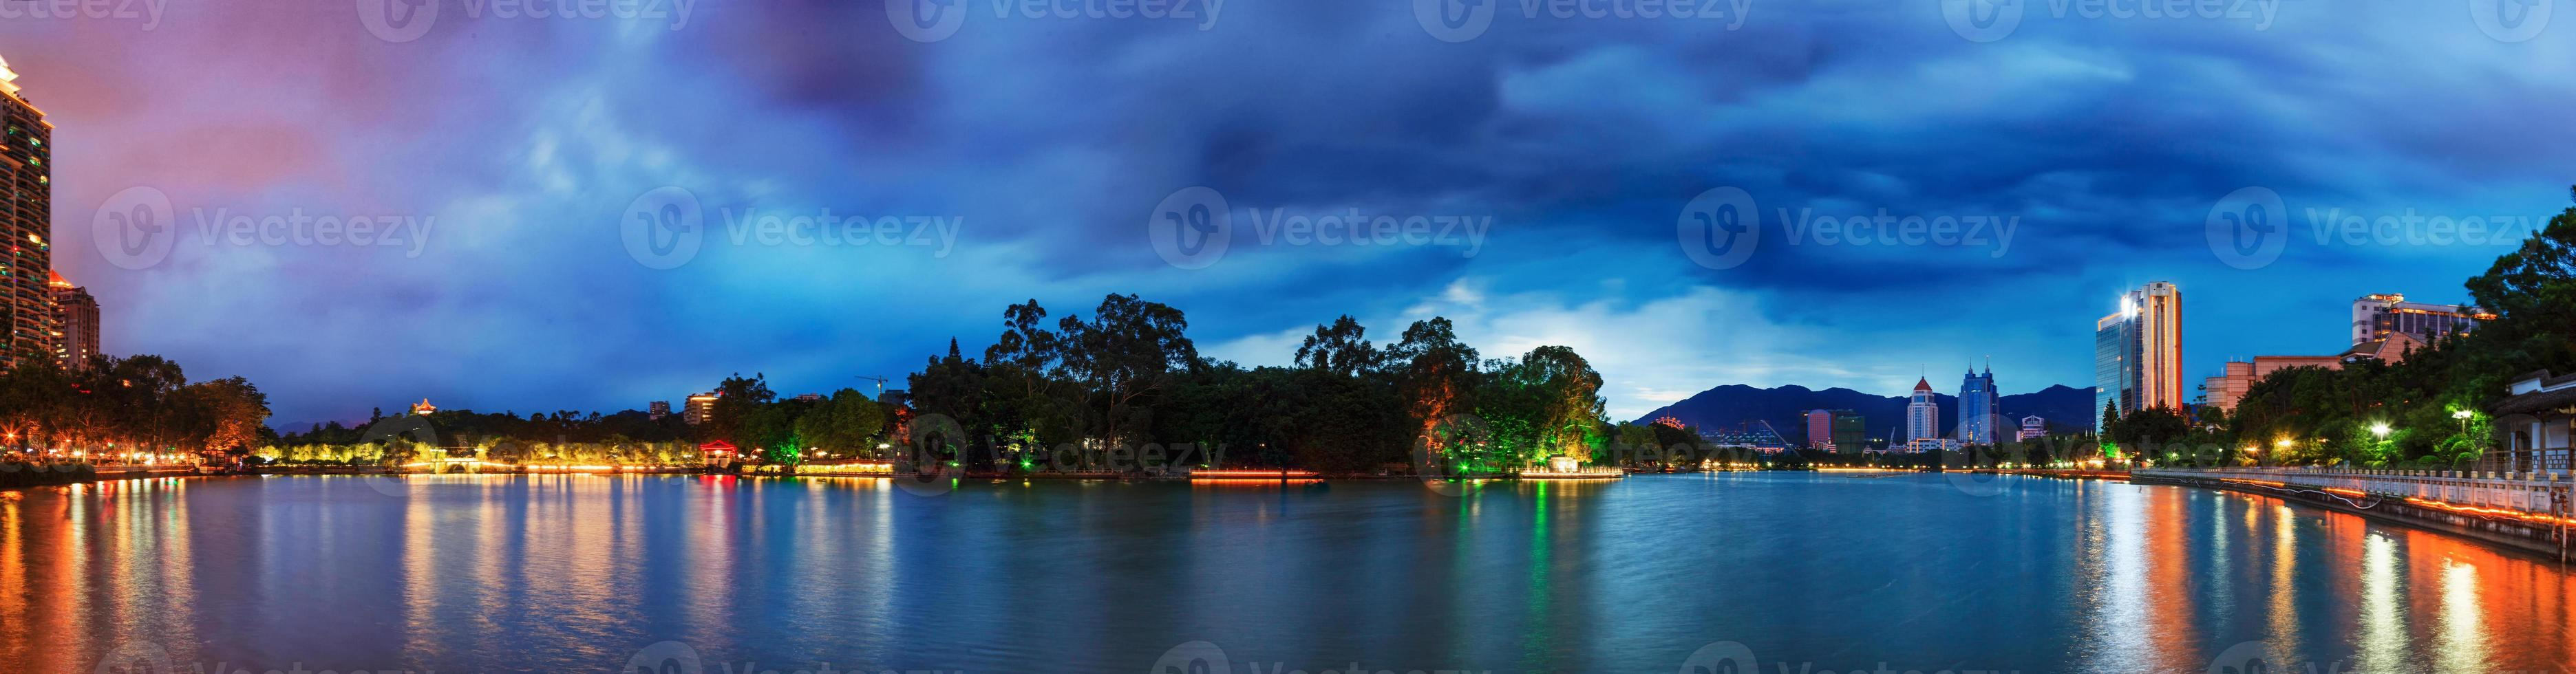 Dramatic sky over a water park in Fuzhou,China photo